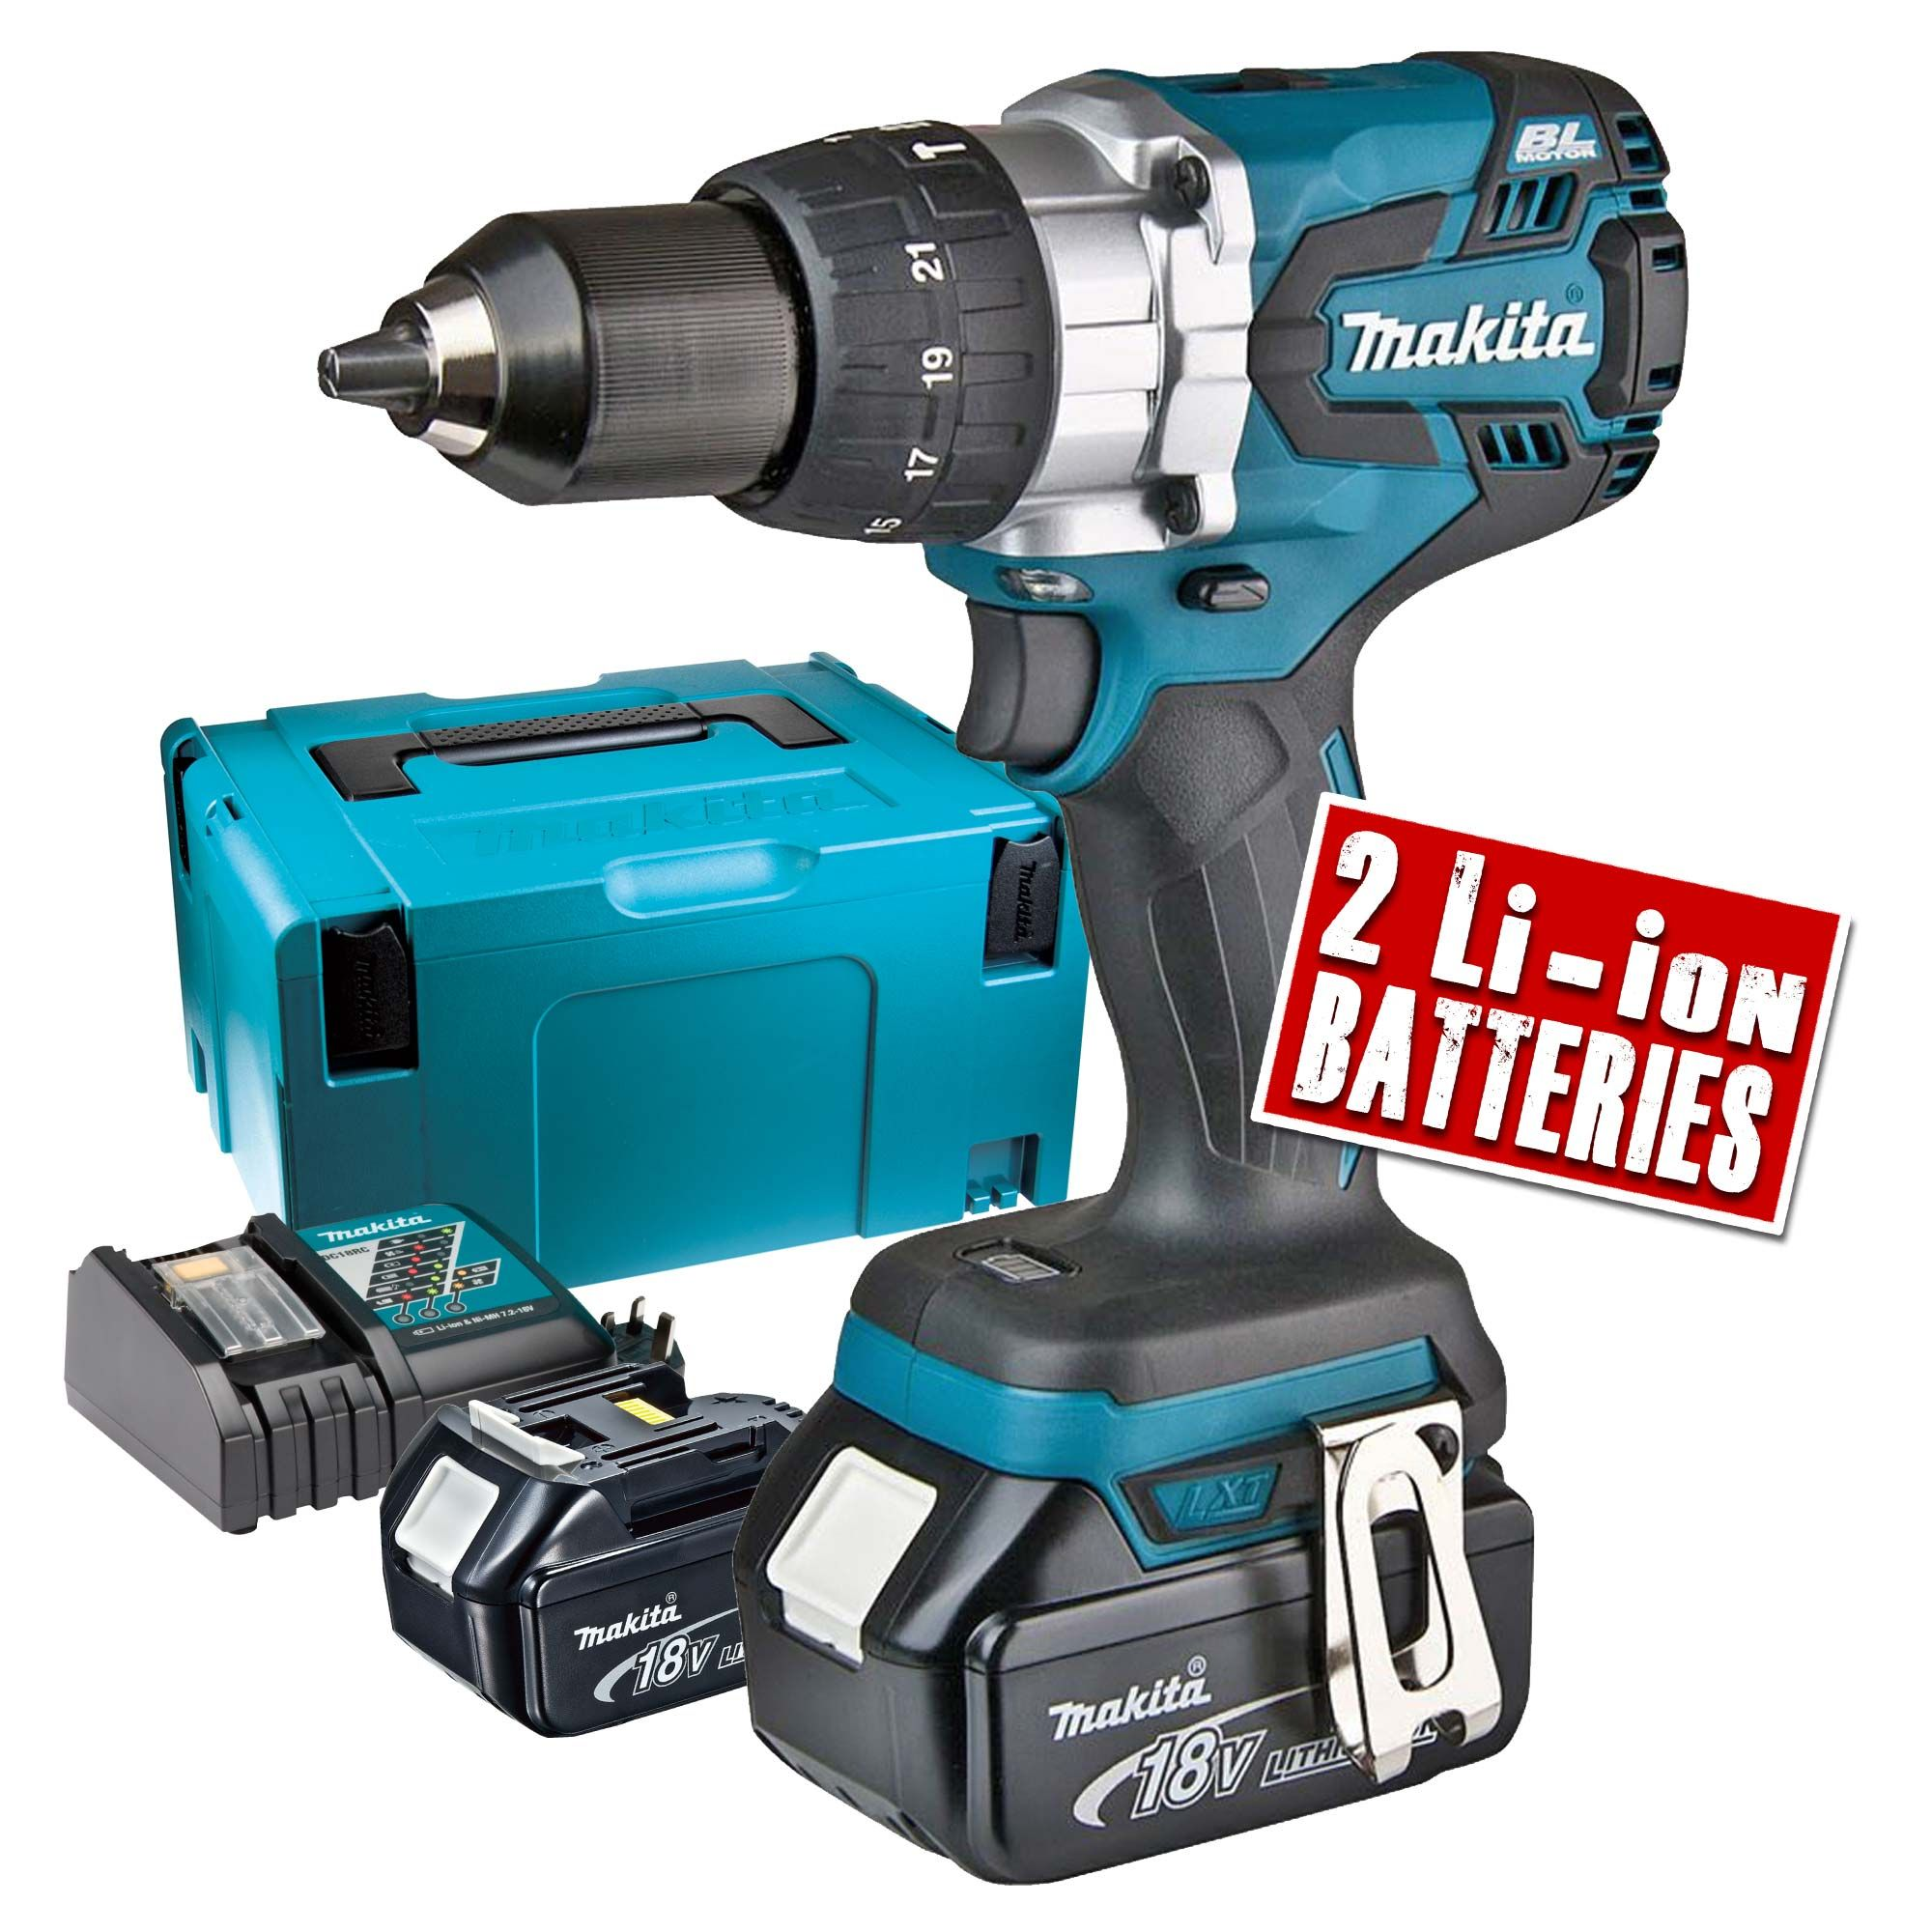 The Importance Of Elements Such As Torque Drill Speed And Hammer Capability Depend On What The Project Requires Drill Hammer Drill Cordless Drill